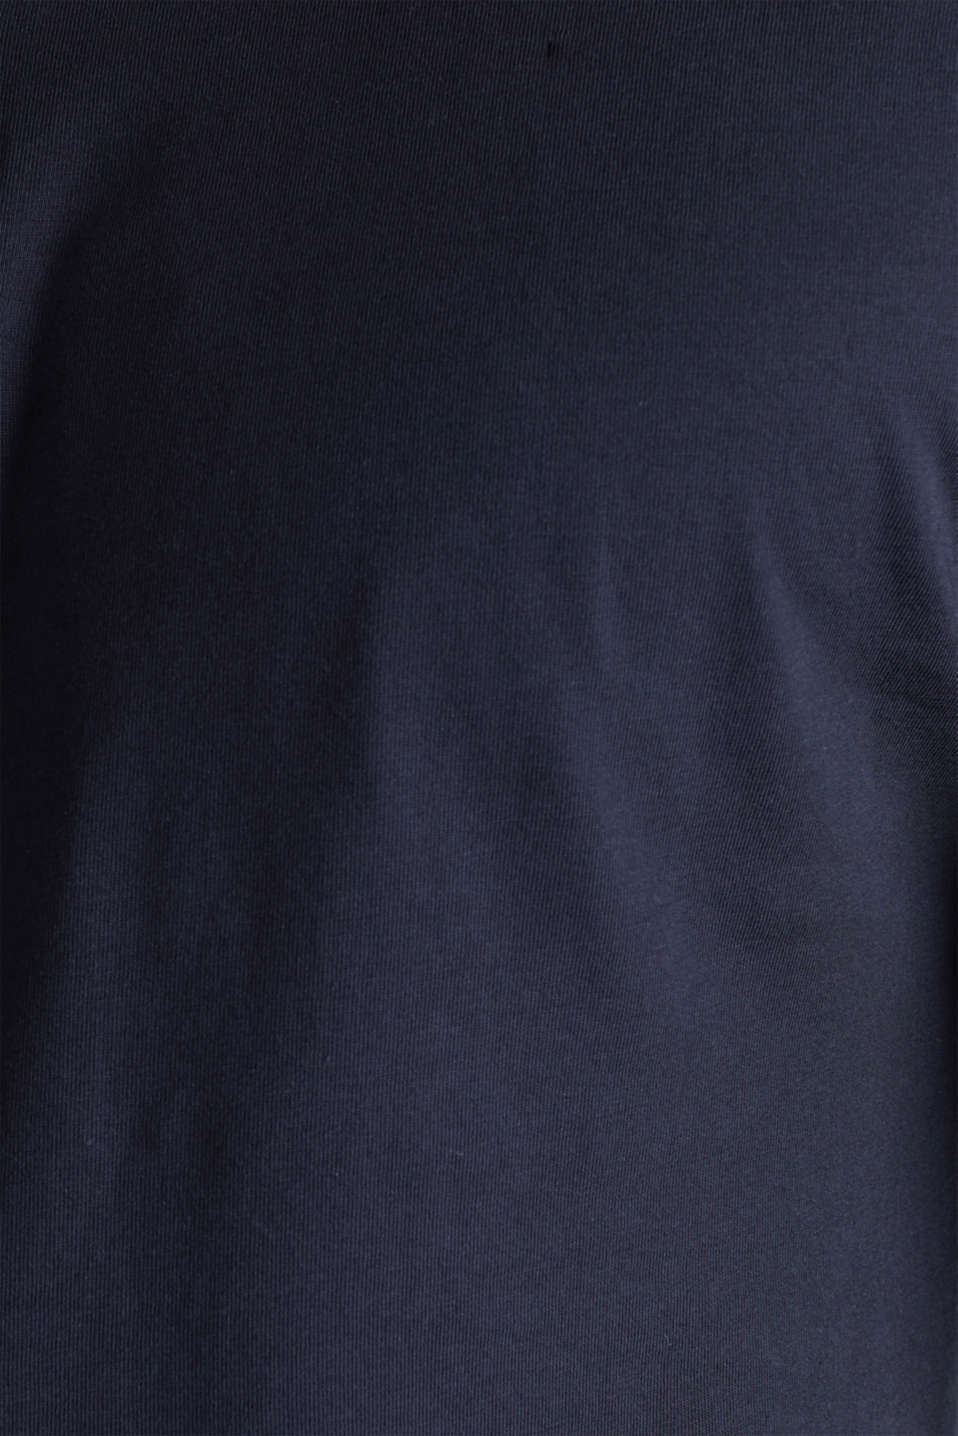 Long sleeve jersey top in 100% cotton, NAVY, detail image number 5